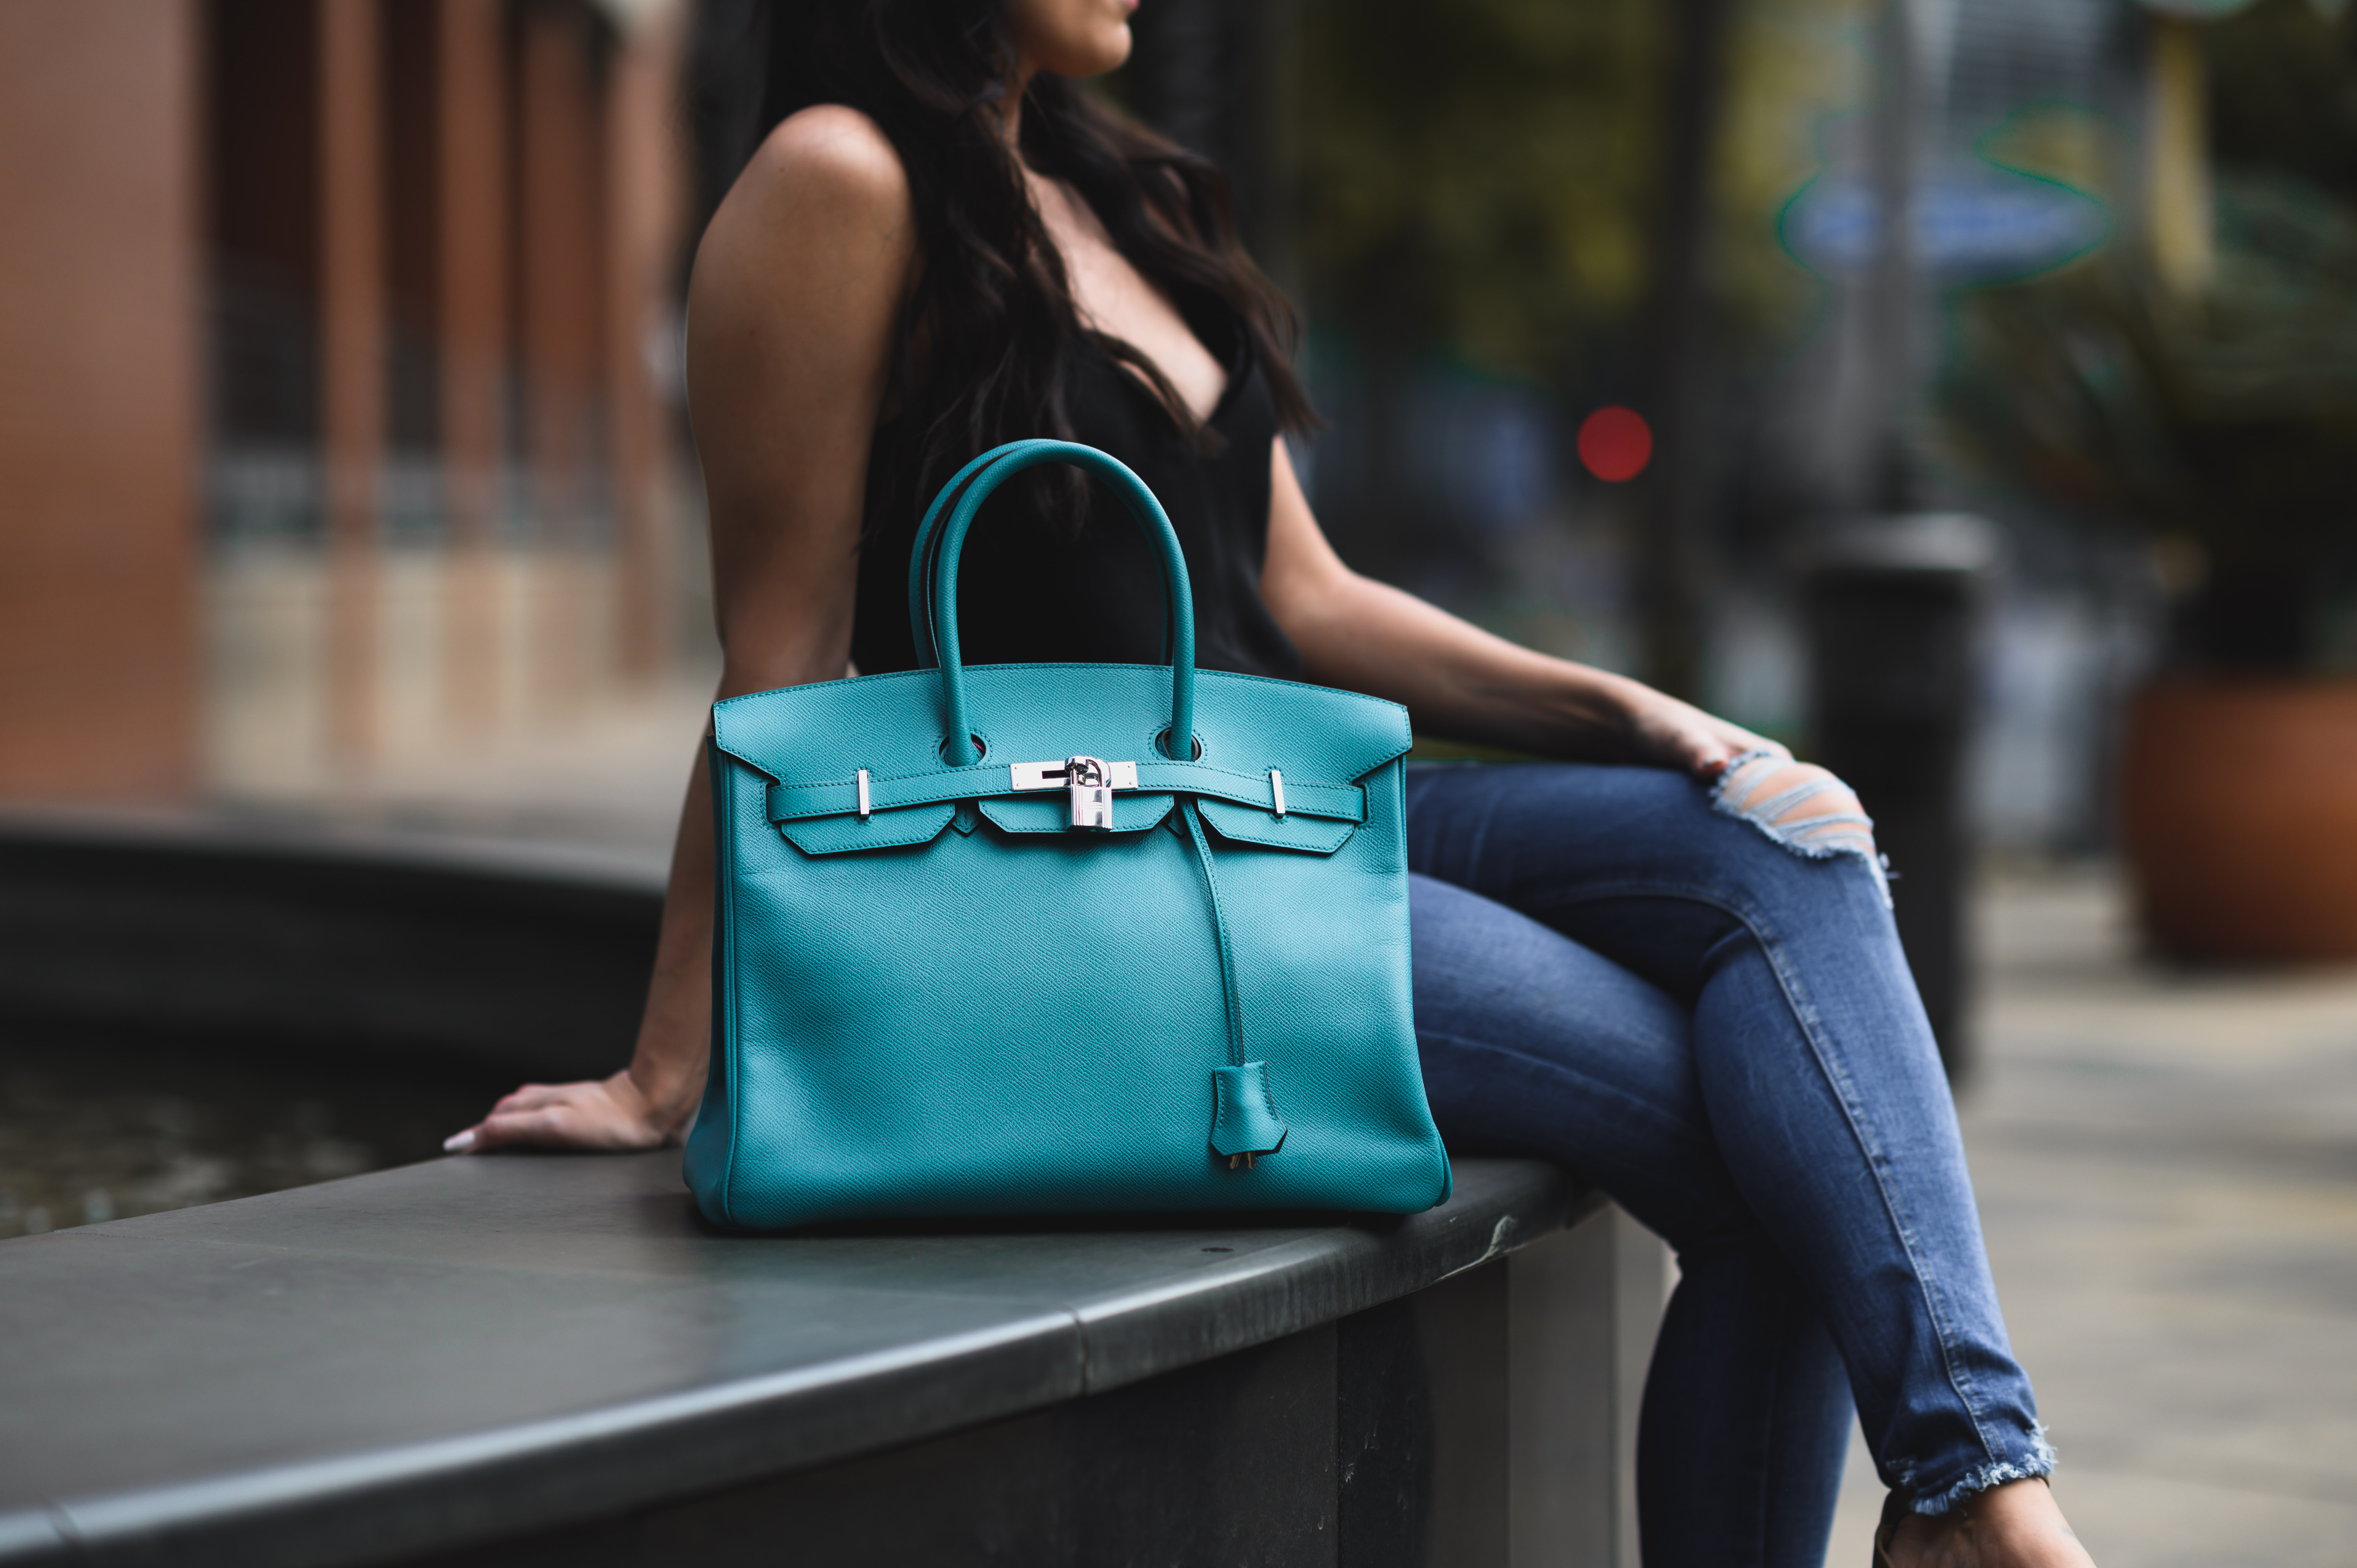 Hermes bags South Africa